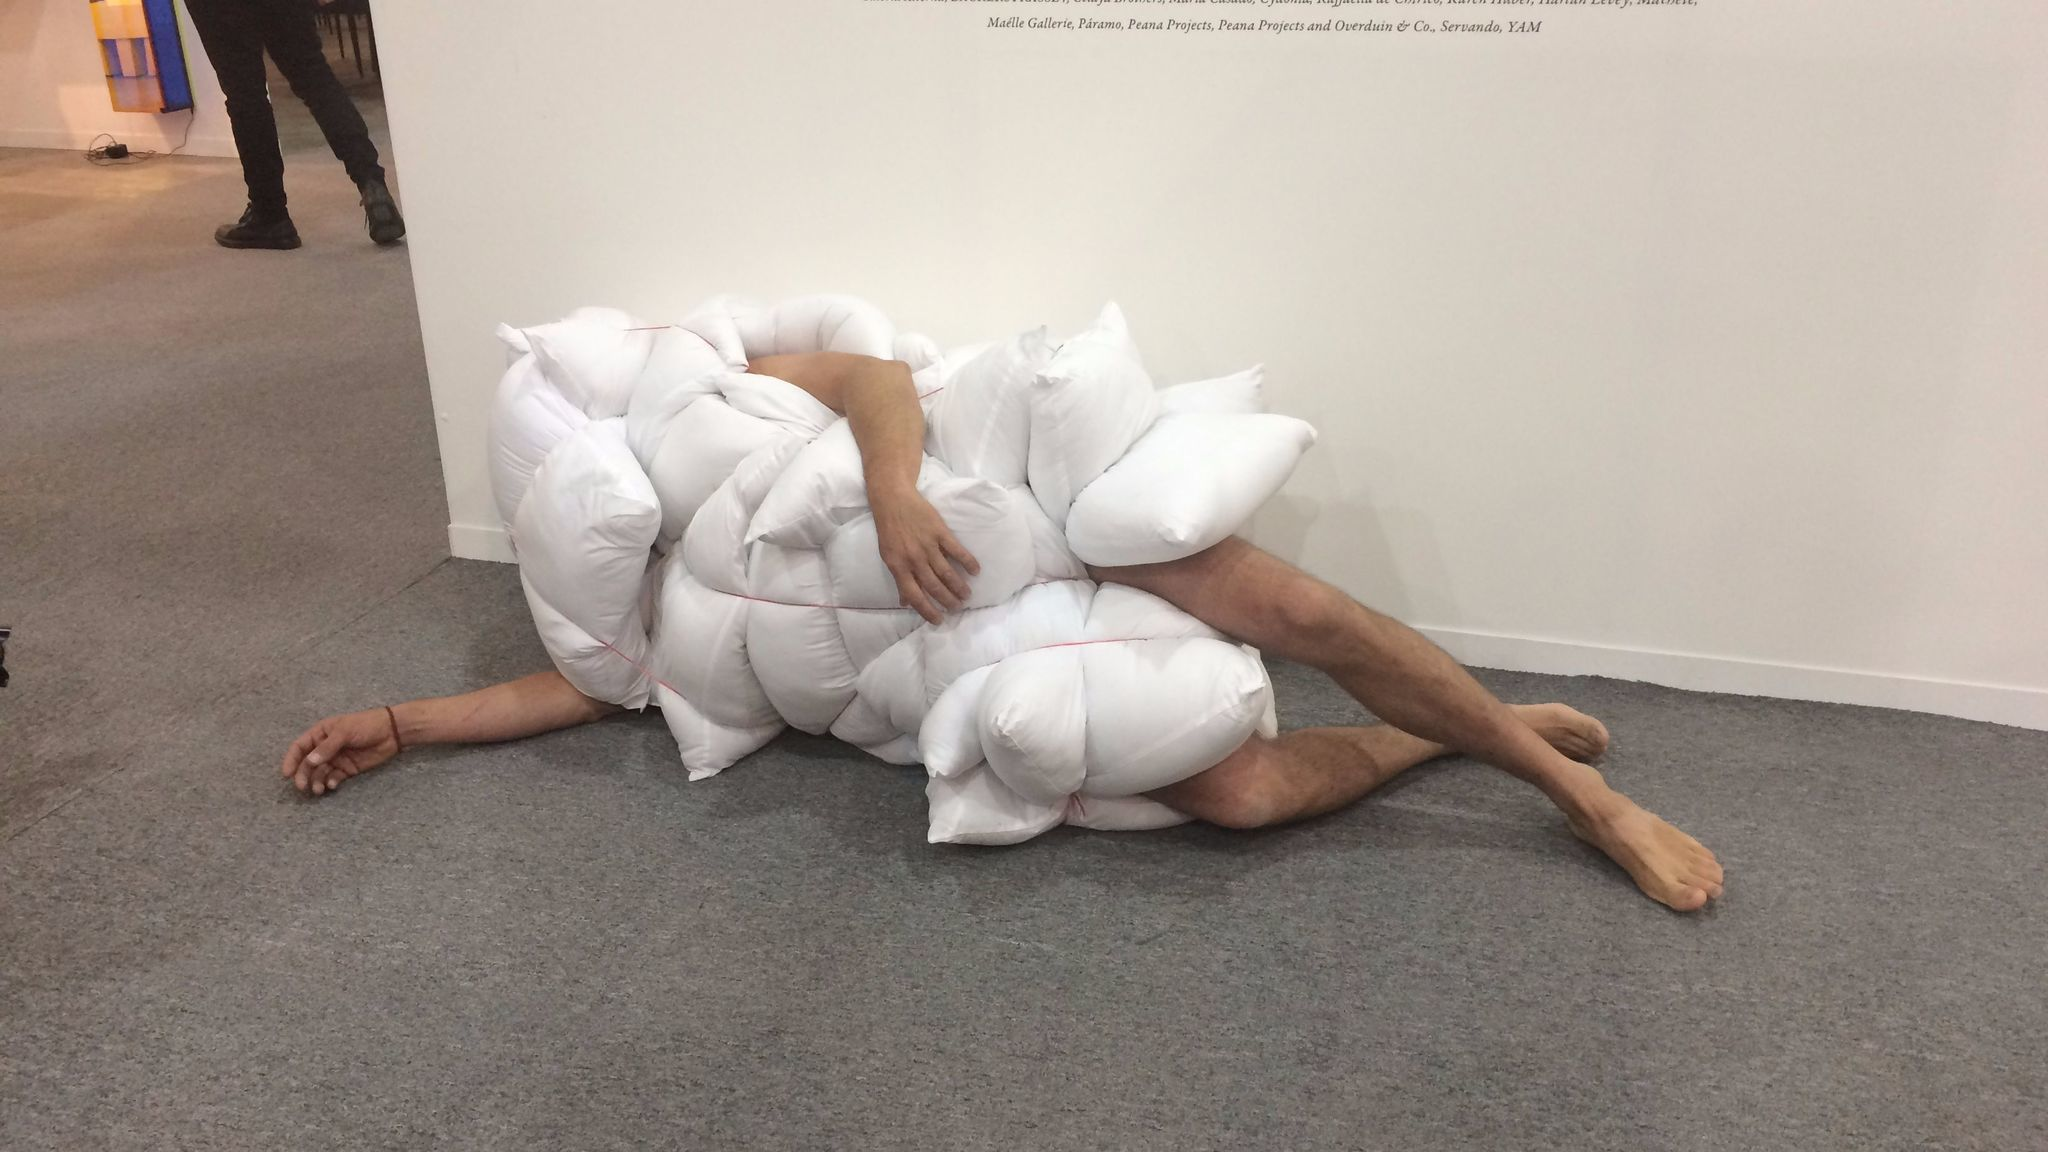 A performance artist covered in pillows at the Zona Maco art fair in Mexico City in February.